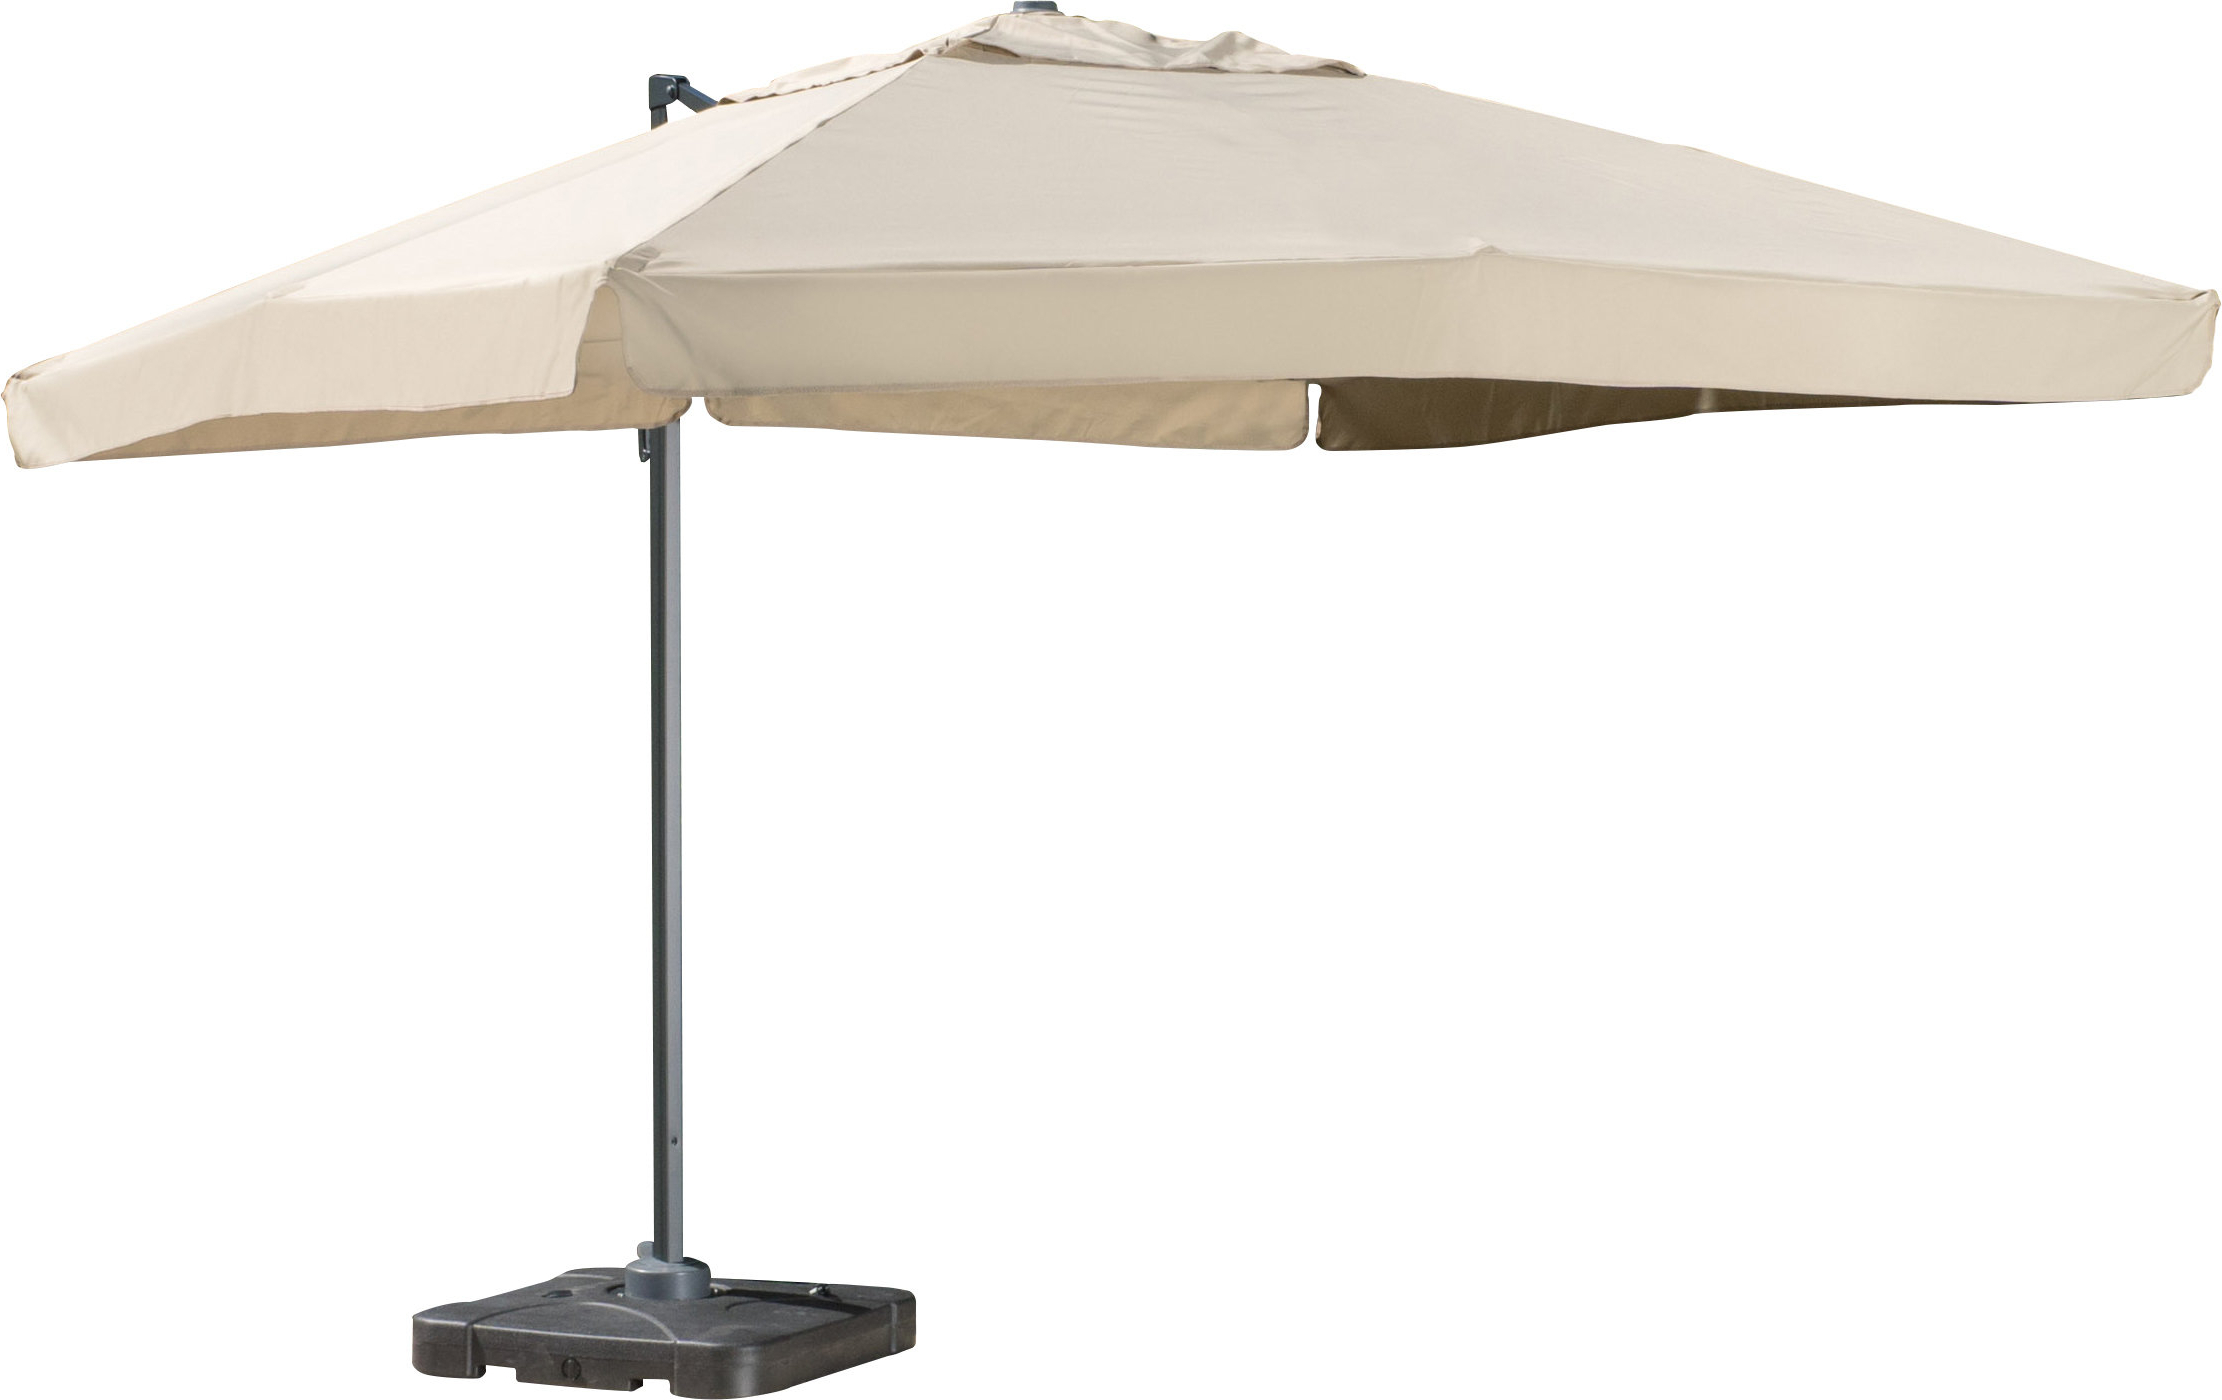 Bondi Square Cantilever Umbrellas Within Latest Bondi 9.8' Square Cantilever Umbrella (Gallery 1 of 20)